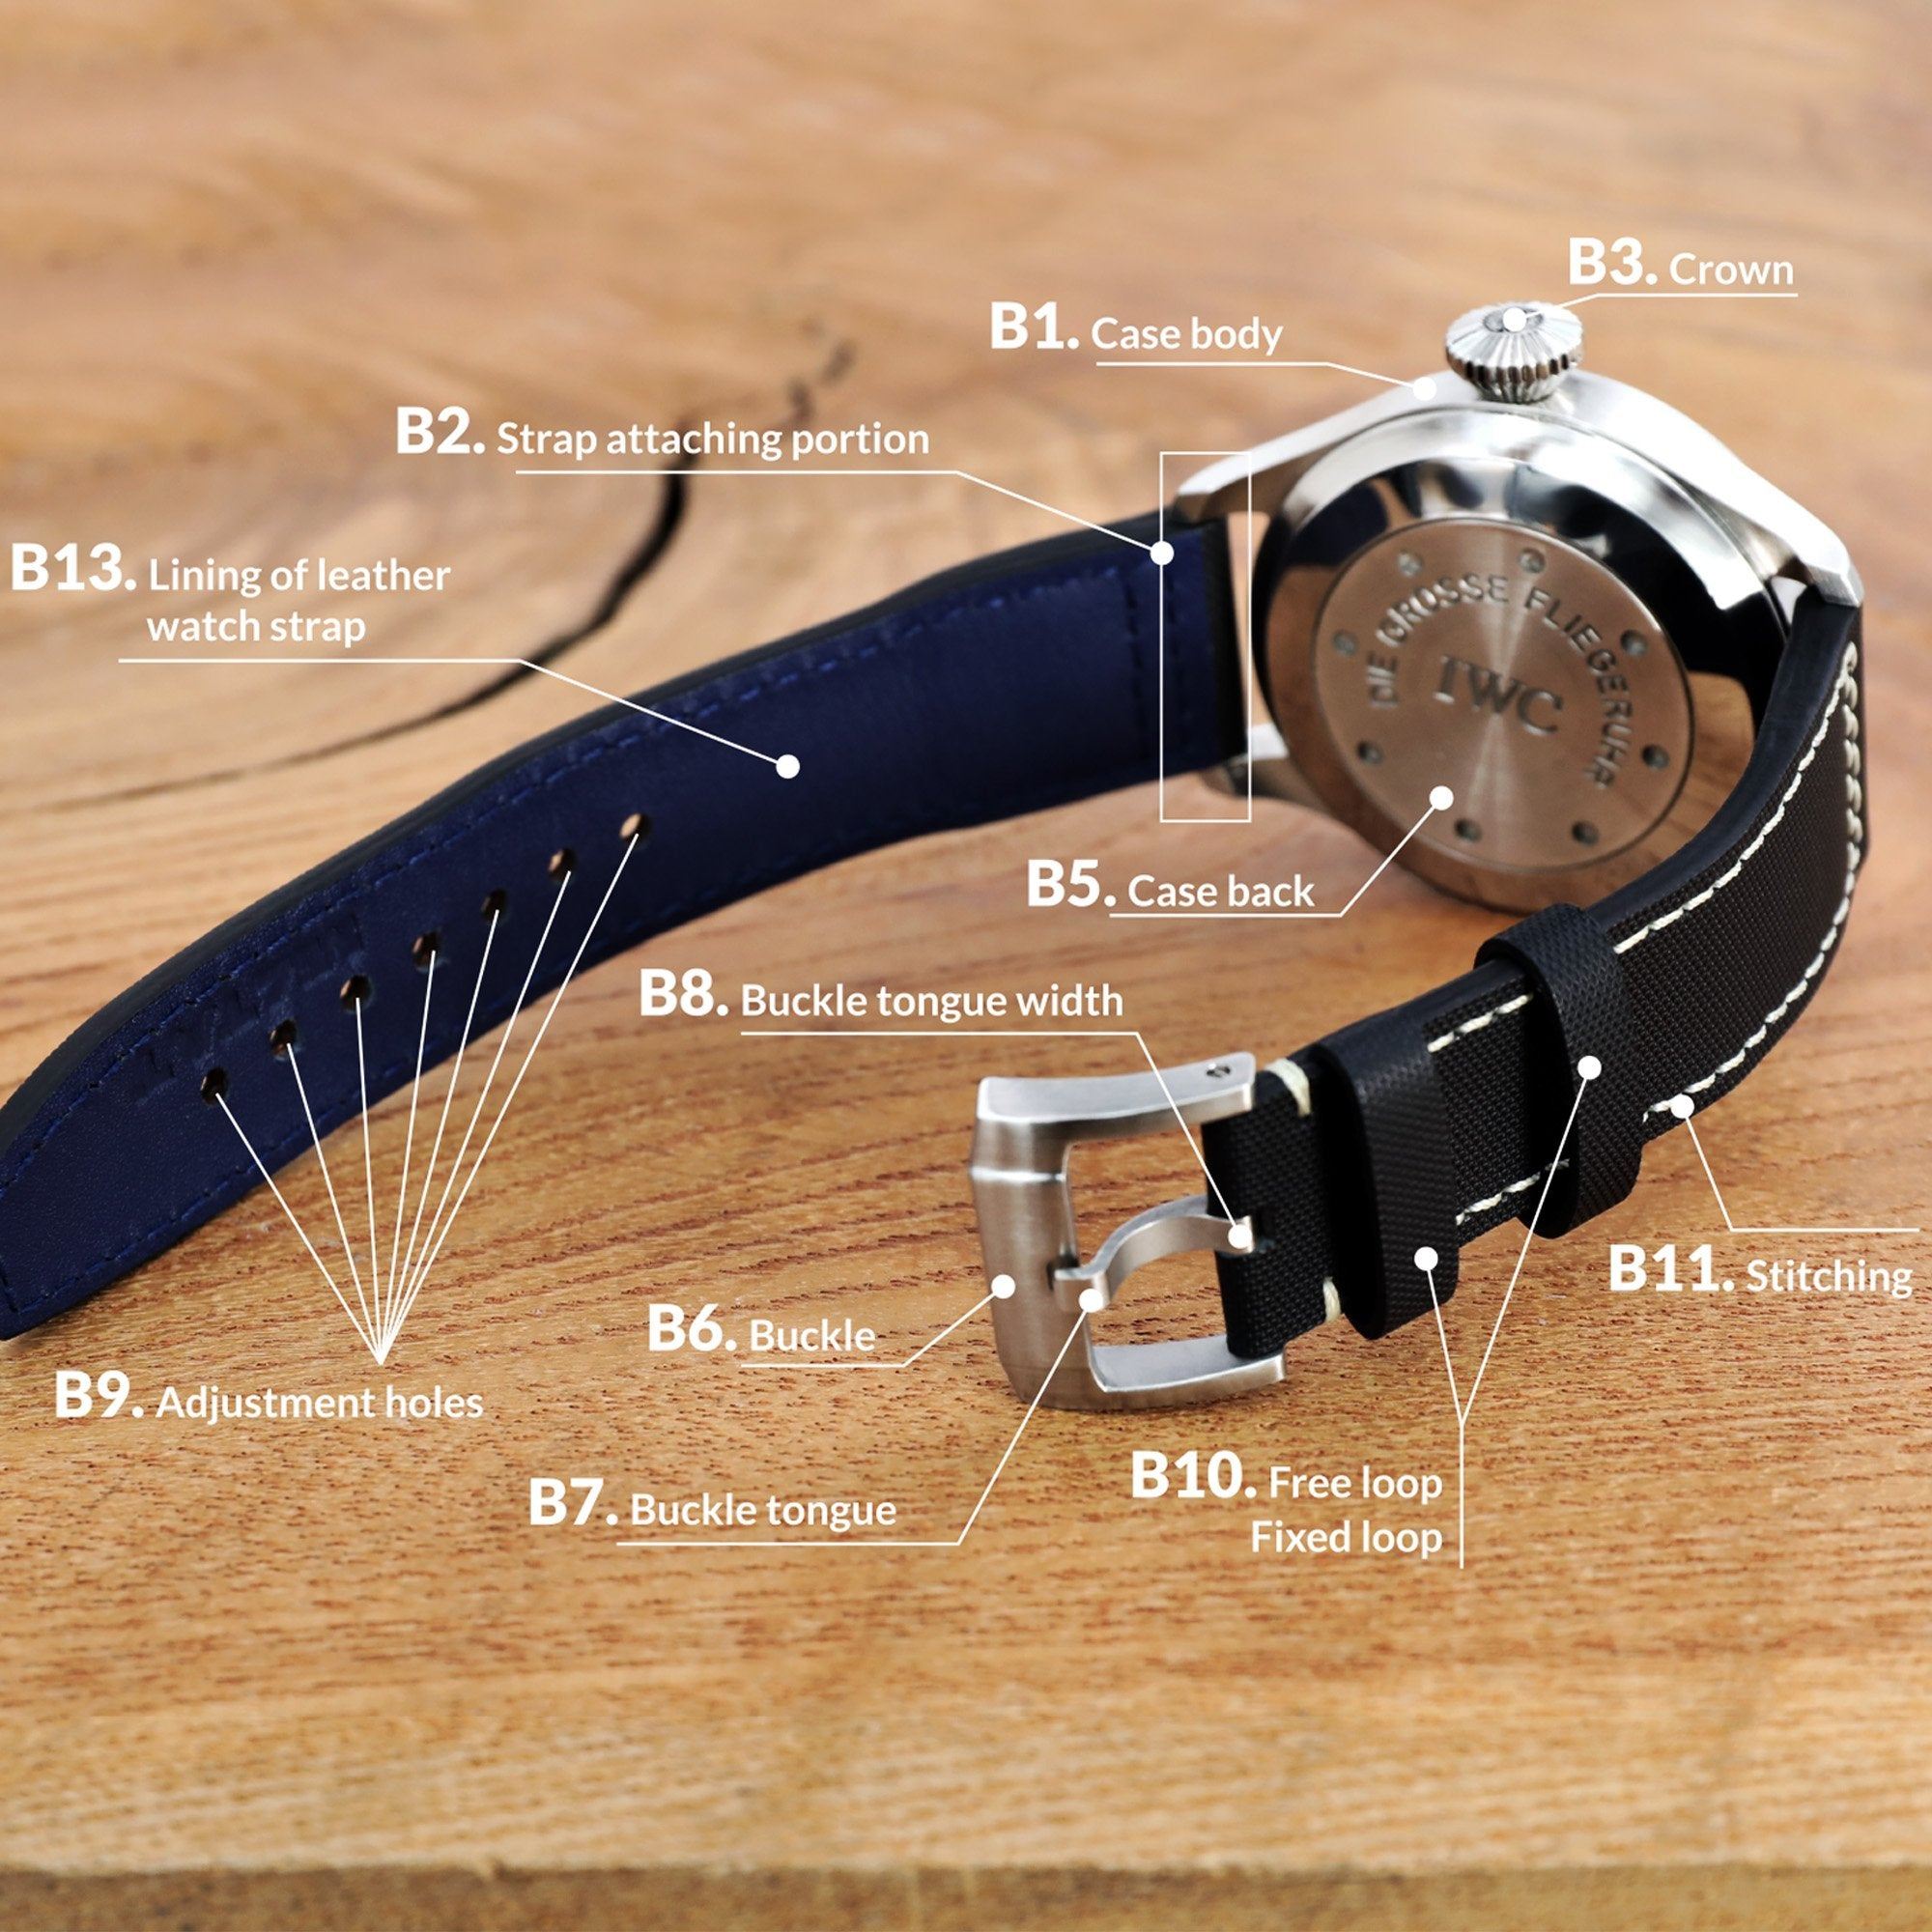 Watch Bands Wiki, Watch Band Parts